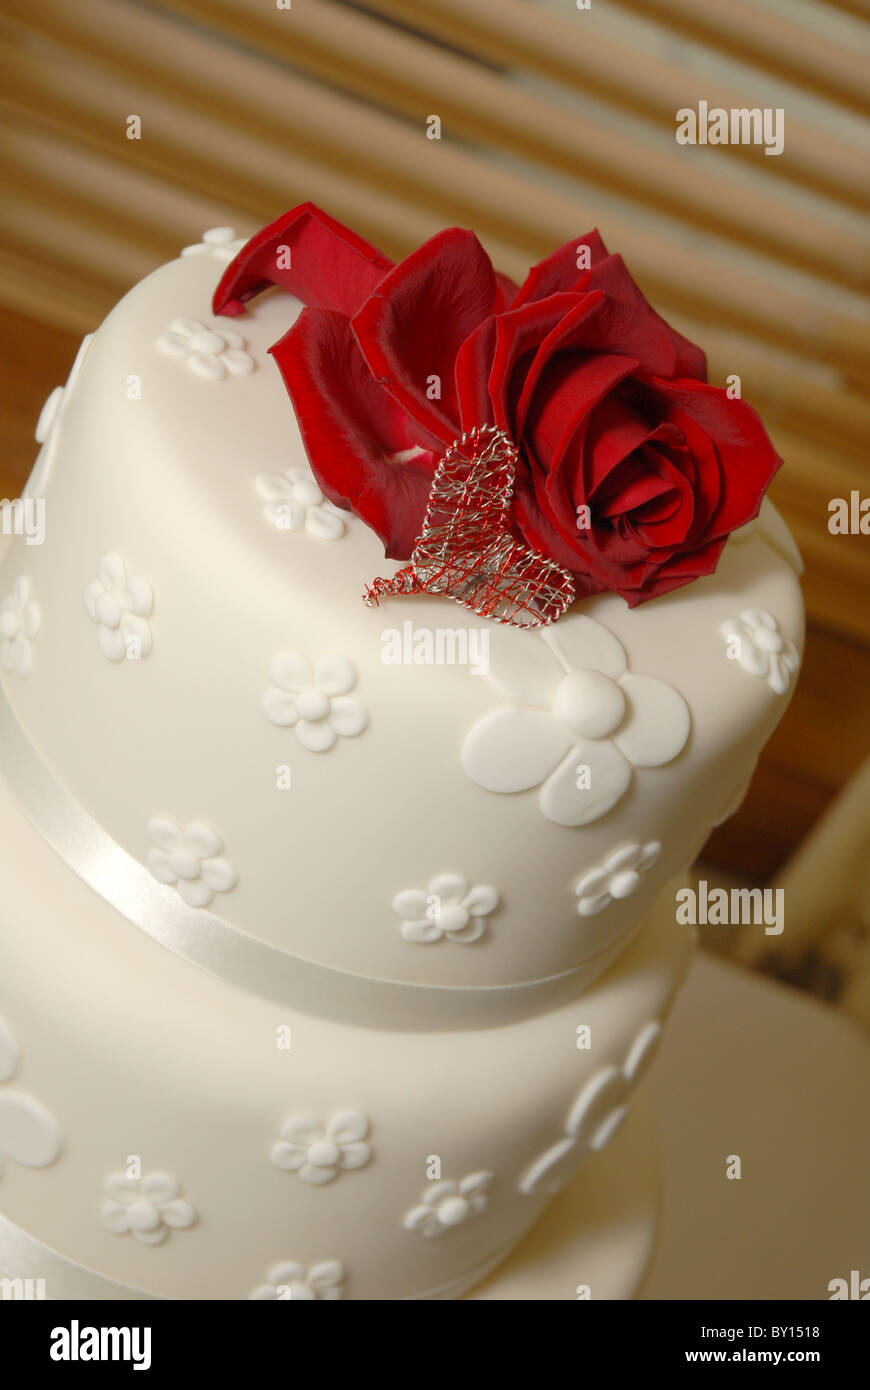 General View Of A White Round Wedding Cake With Real Red Rose Topper And Heart Mad Wire At Reception